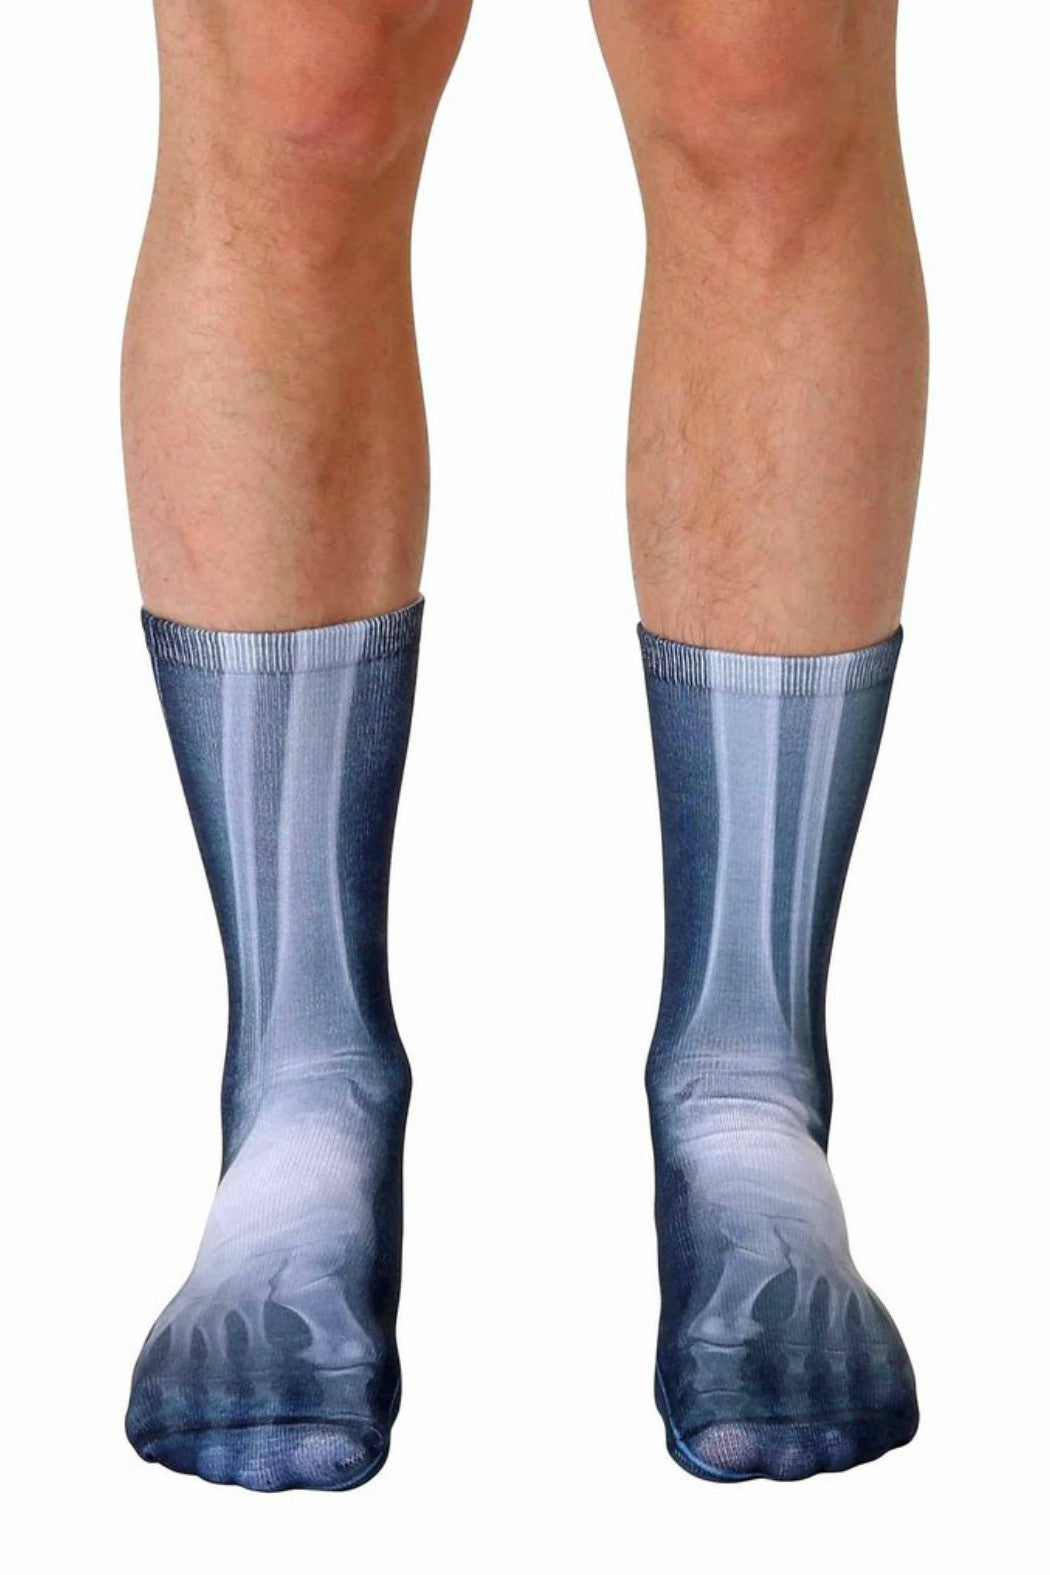 X-Ray Crew Socks - R+D Hipster Emporium | Womens & Mens Clothing